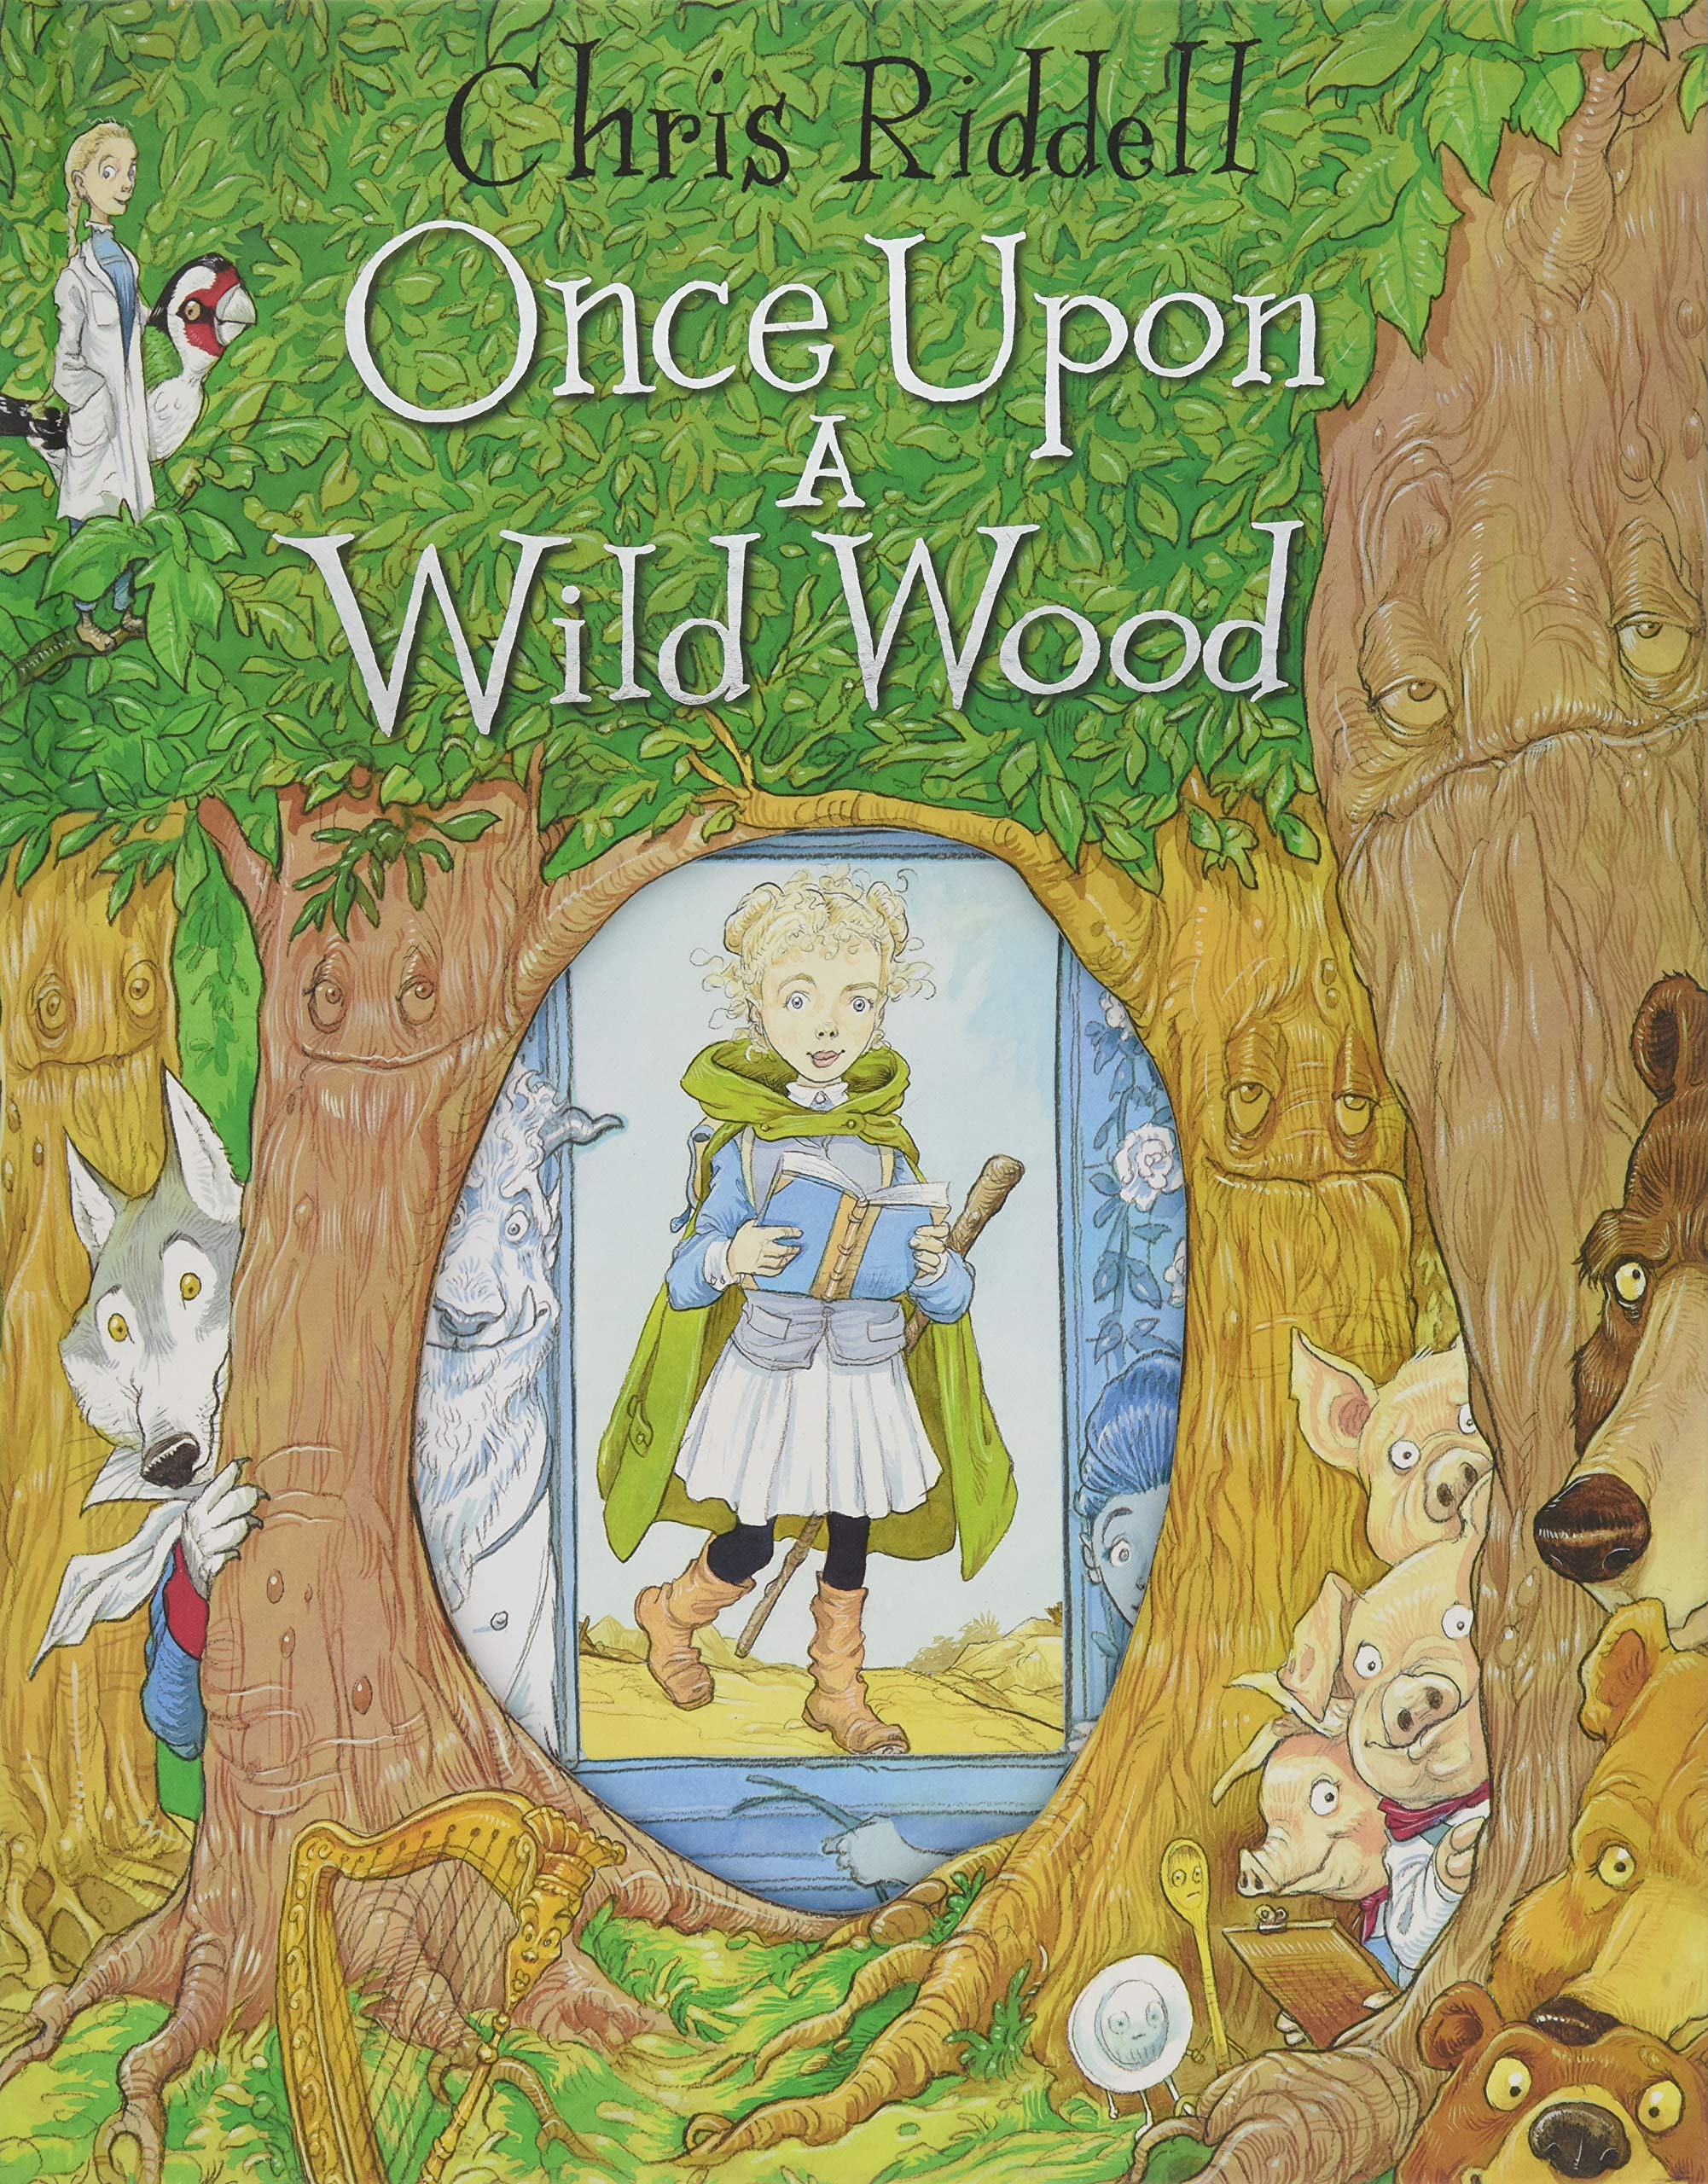 Image result for ONCE UPON A WILD WOOD by Chris Riddell